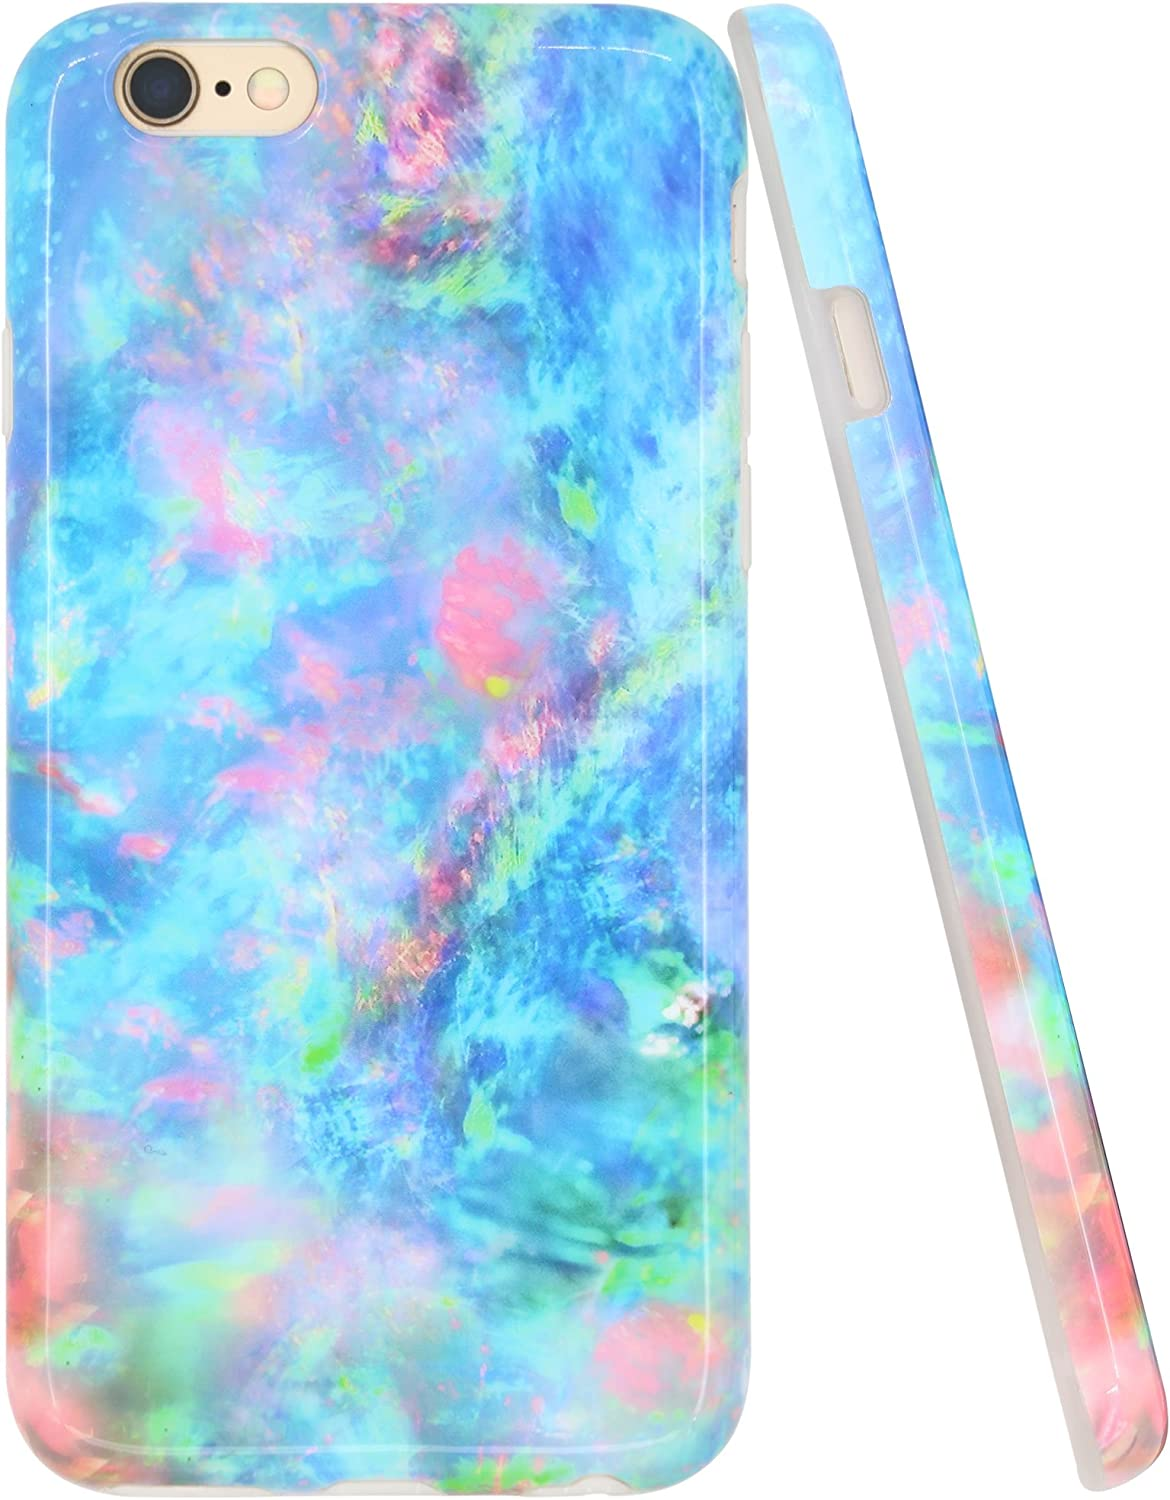 A-Focus Case for iPhone 6 Plus Opal Case, iPhone 6s Plus Case, Colorful Pink Green Blue Marble Pattern IMD Design Slim Shock Proof Silicone Cover Case for iPhone 6 Plus 6s Plus 5.5 inch Glossy Green